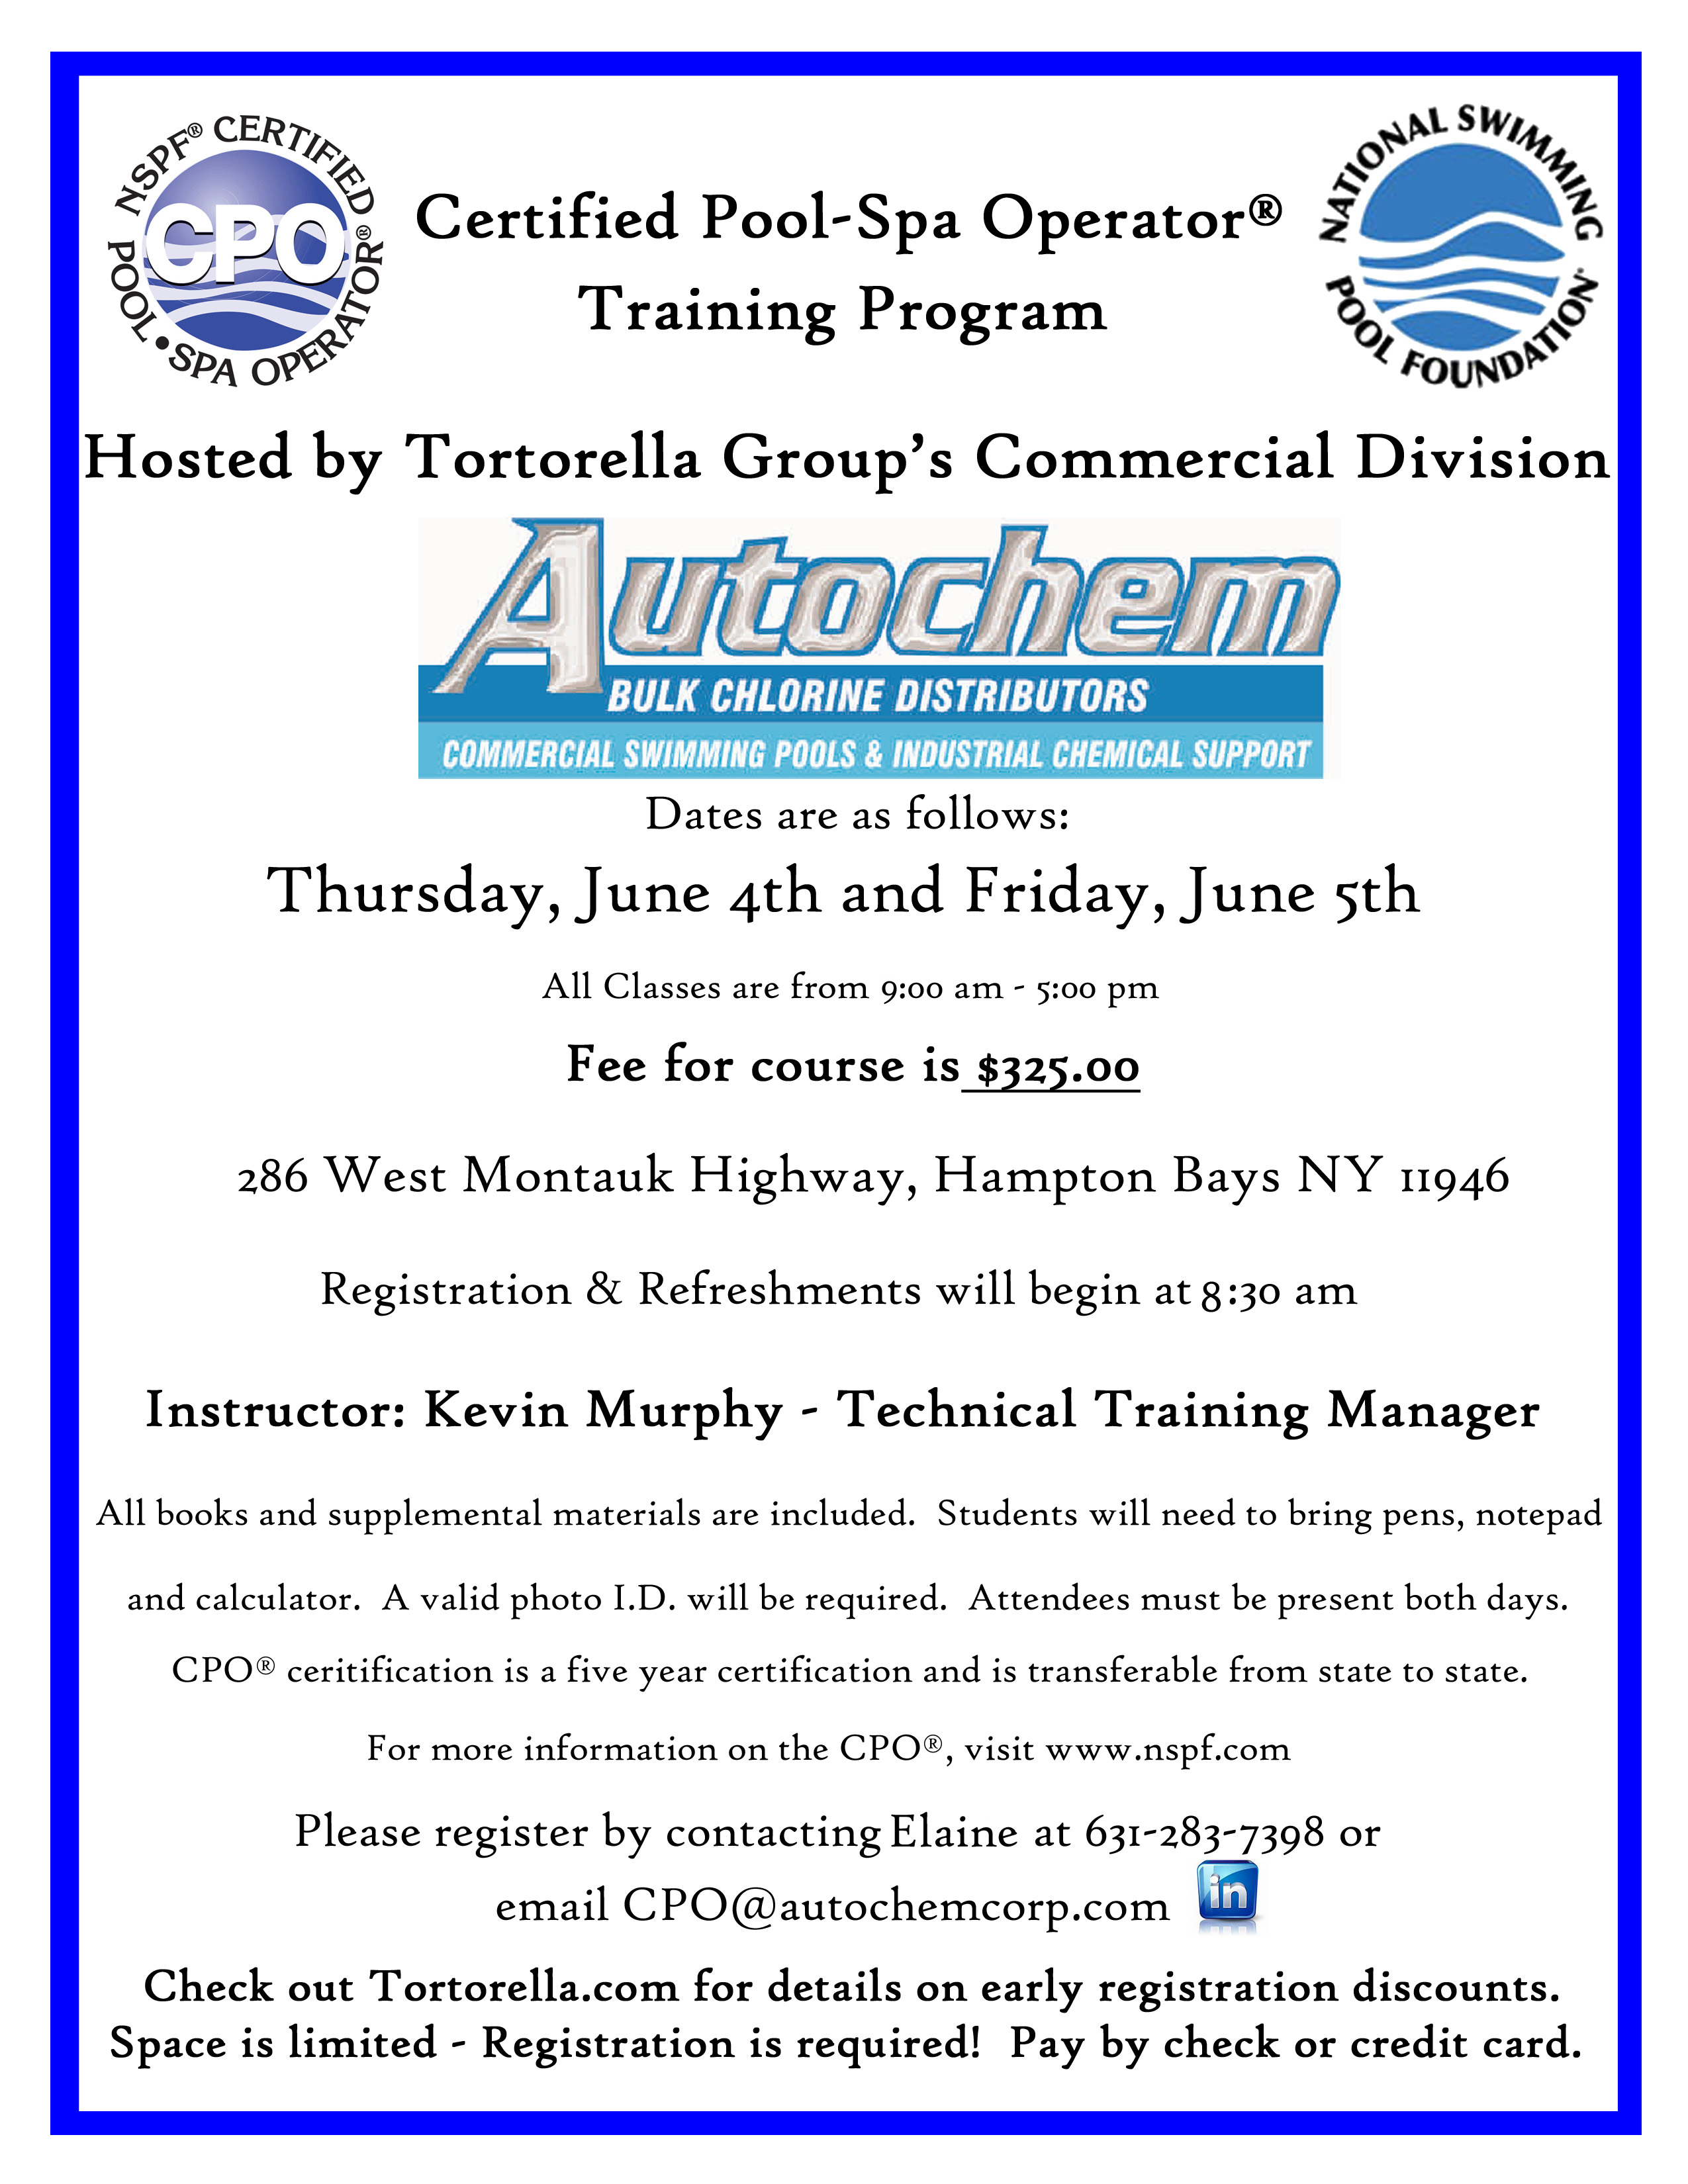 Certified Pool Spa Operator Training Program Being Held June 4th And